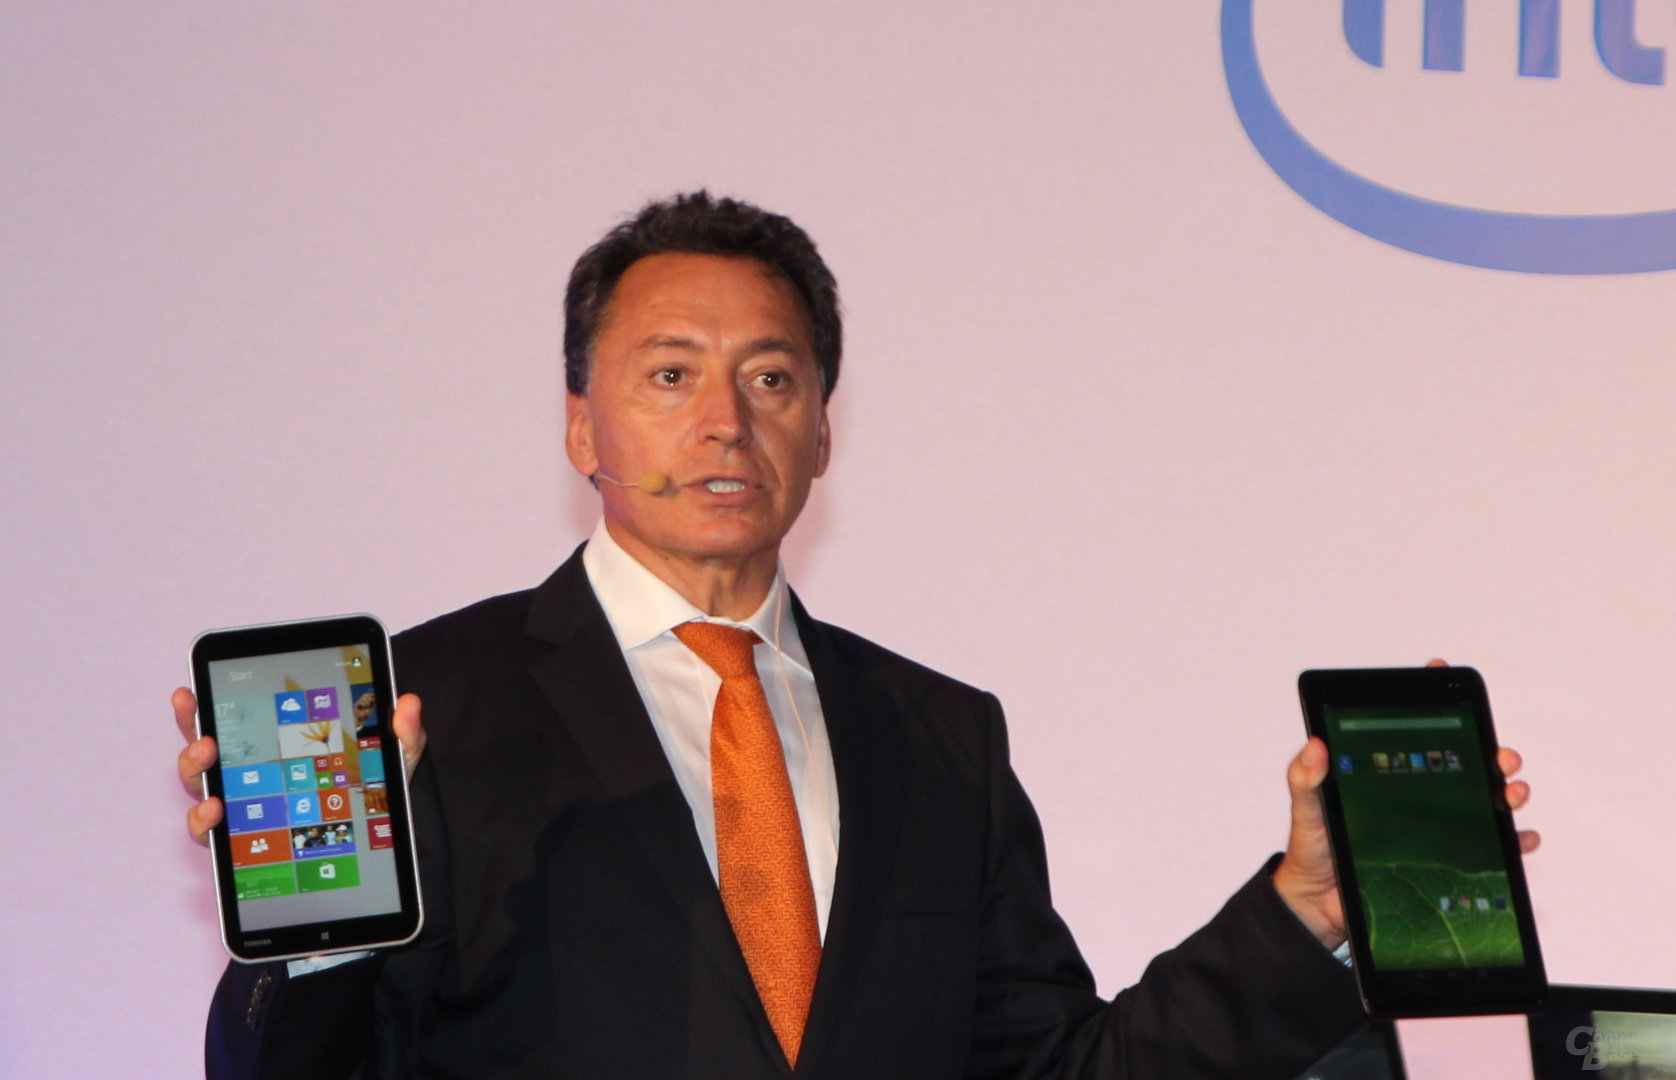 Christian Morales zeigt zwei Bay-Trail-Tablets